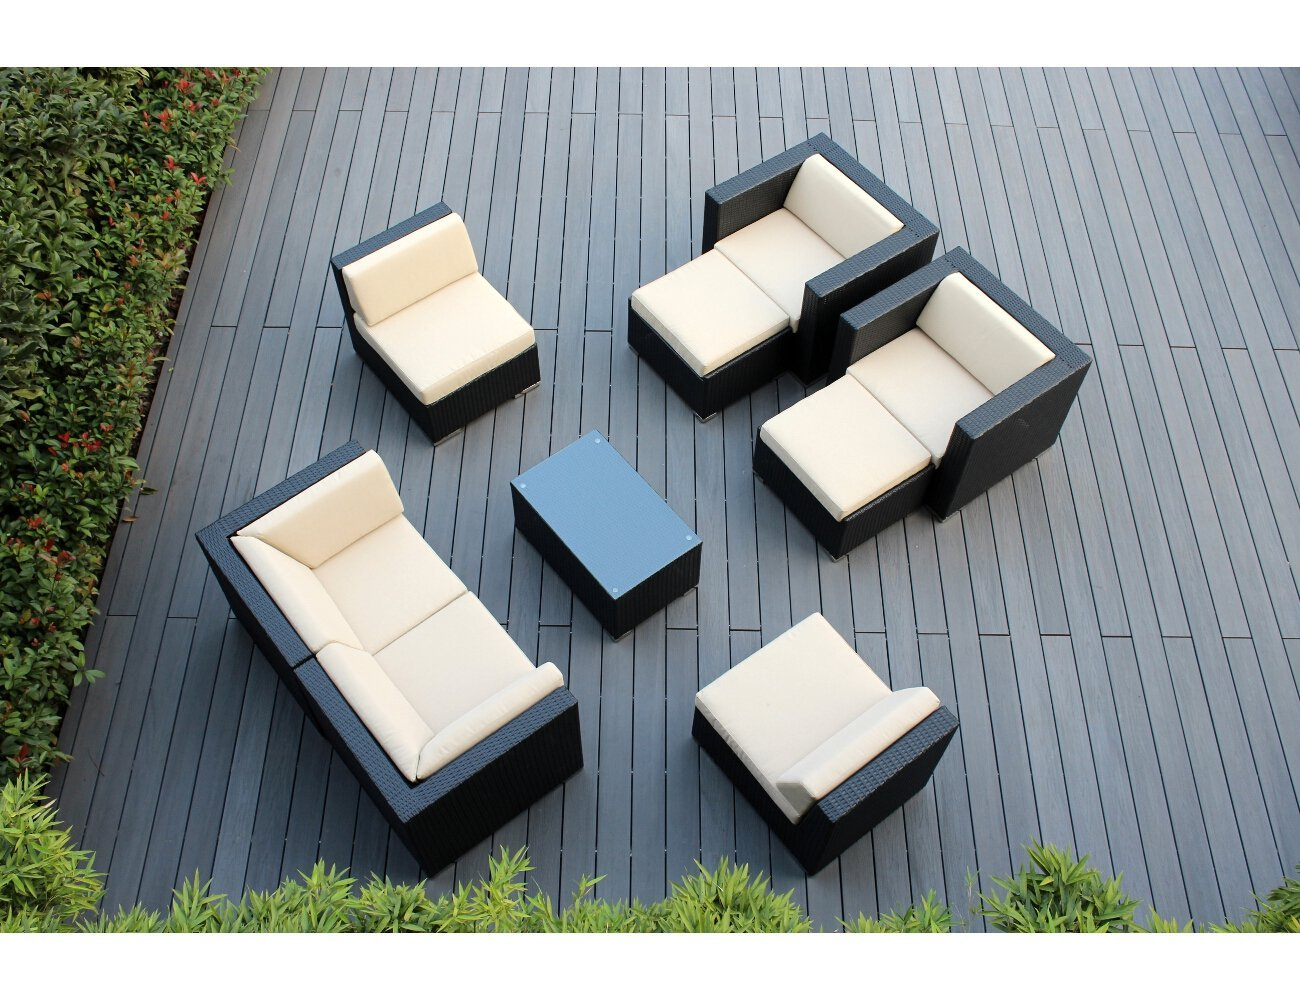 Genuine Ohana 9 Piece Outdoor Wicker Patio Furniture Sectional